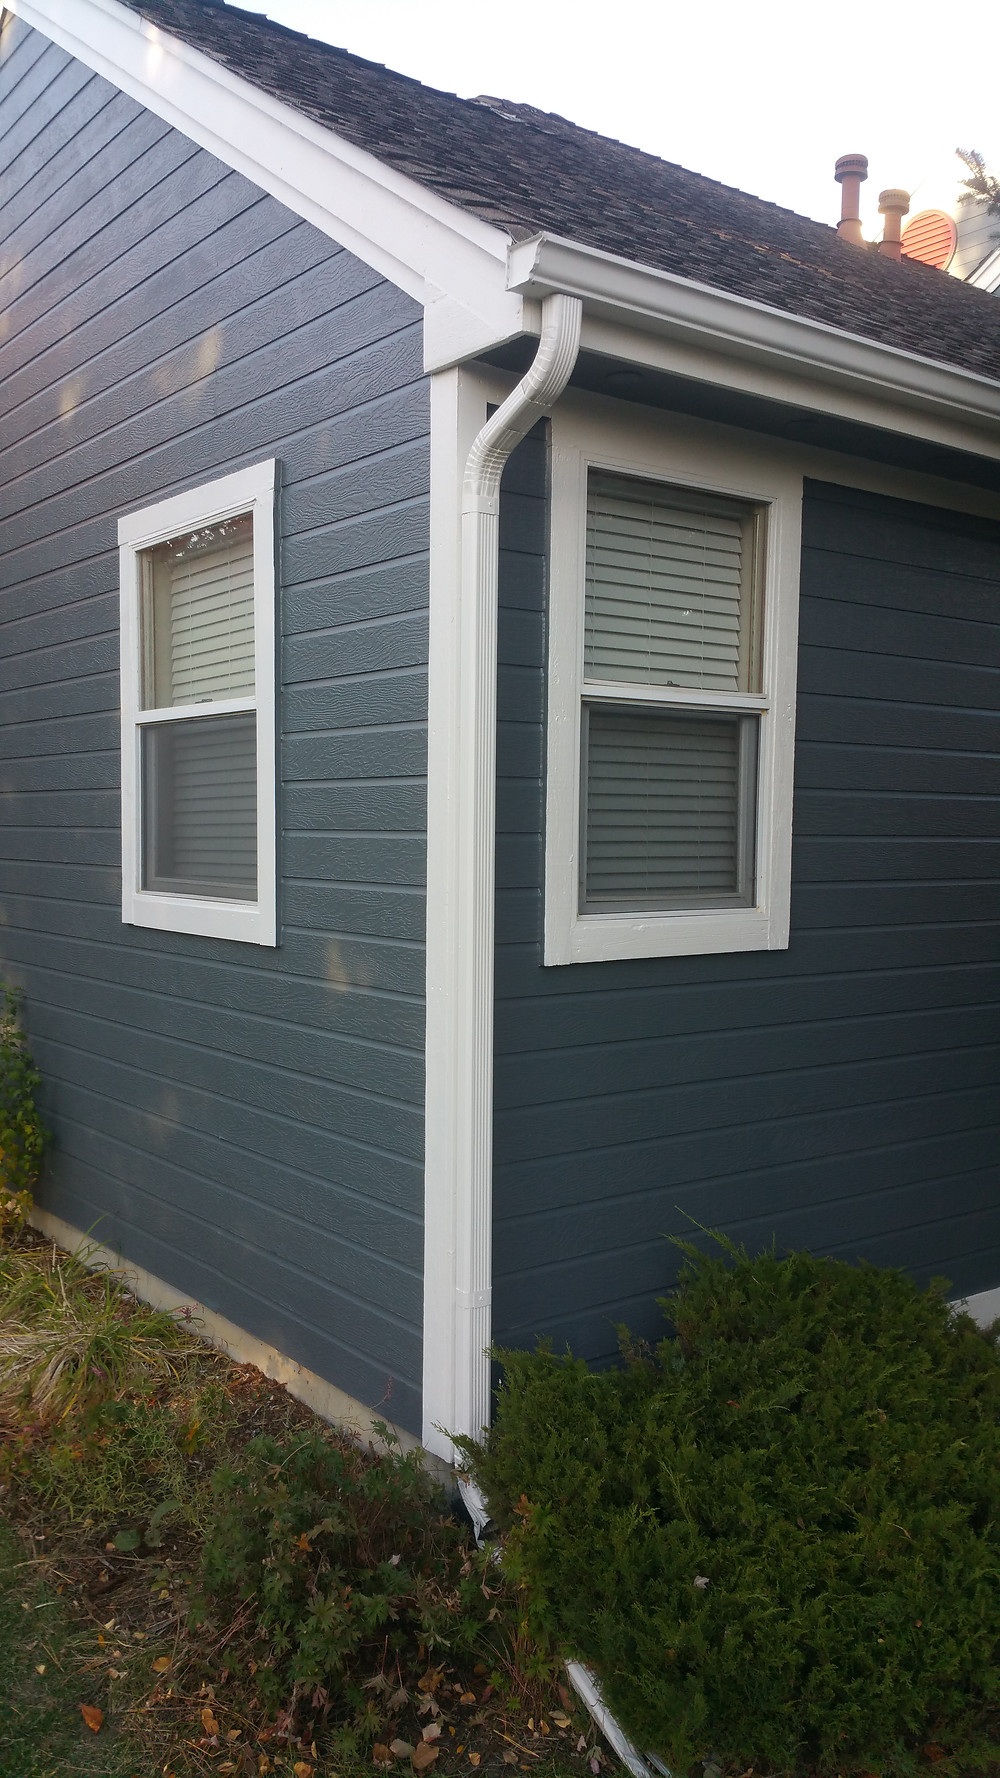 The white trim really pops against the steel grayish blue body color.